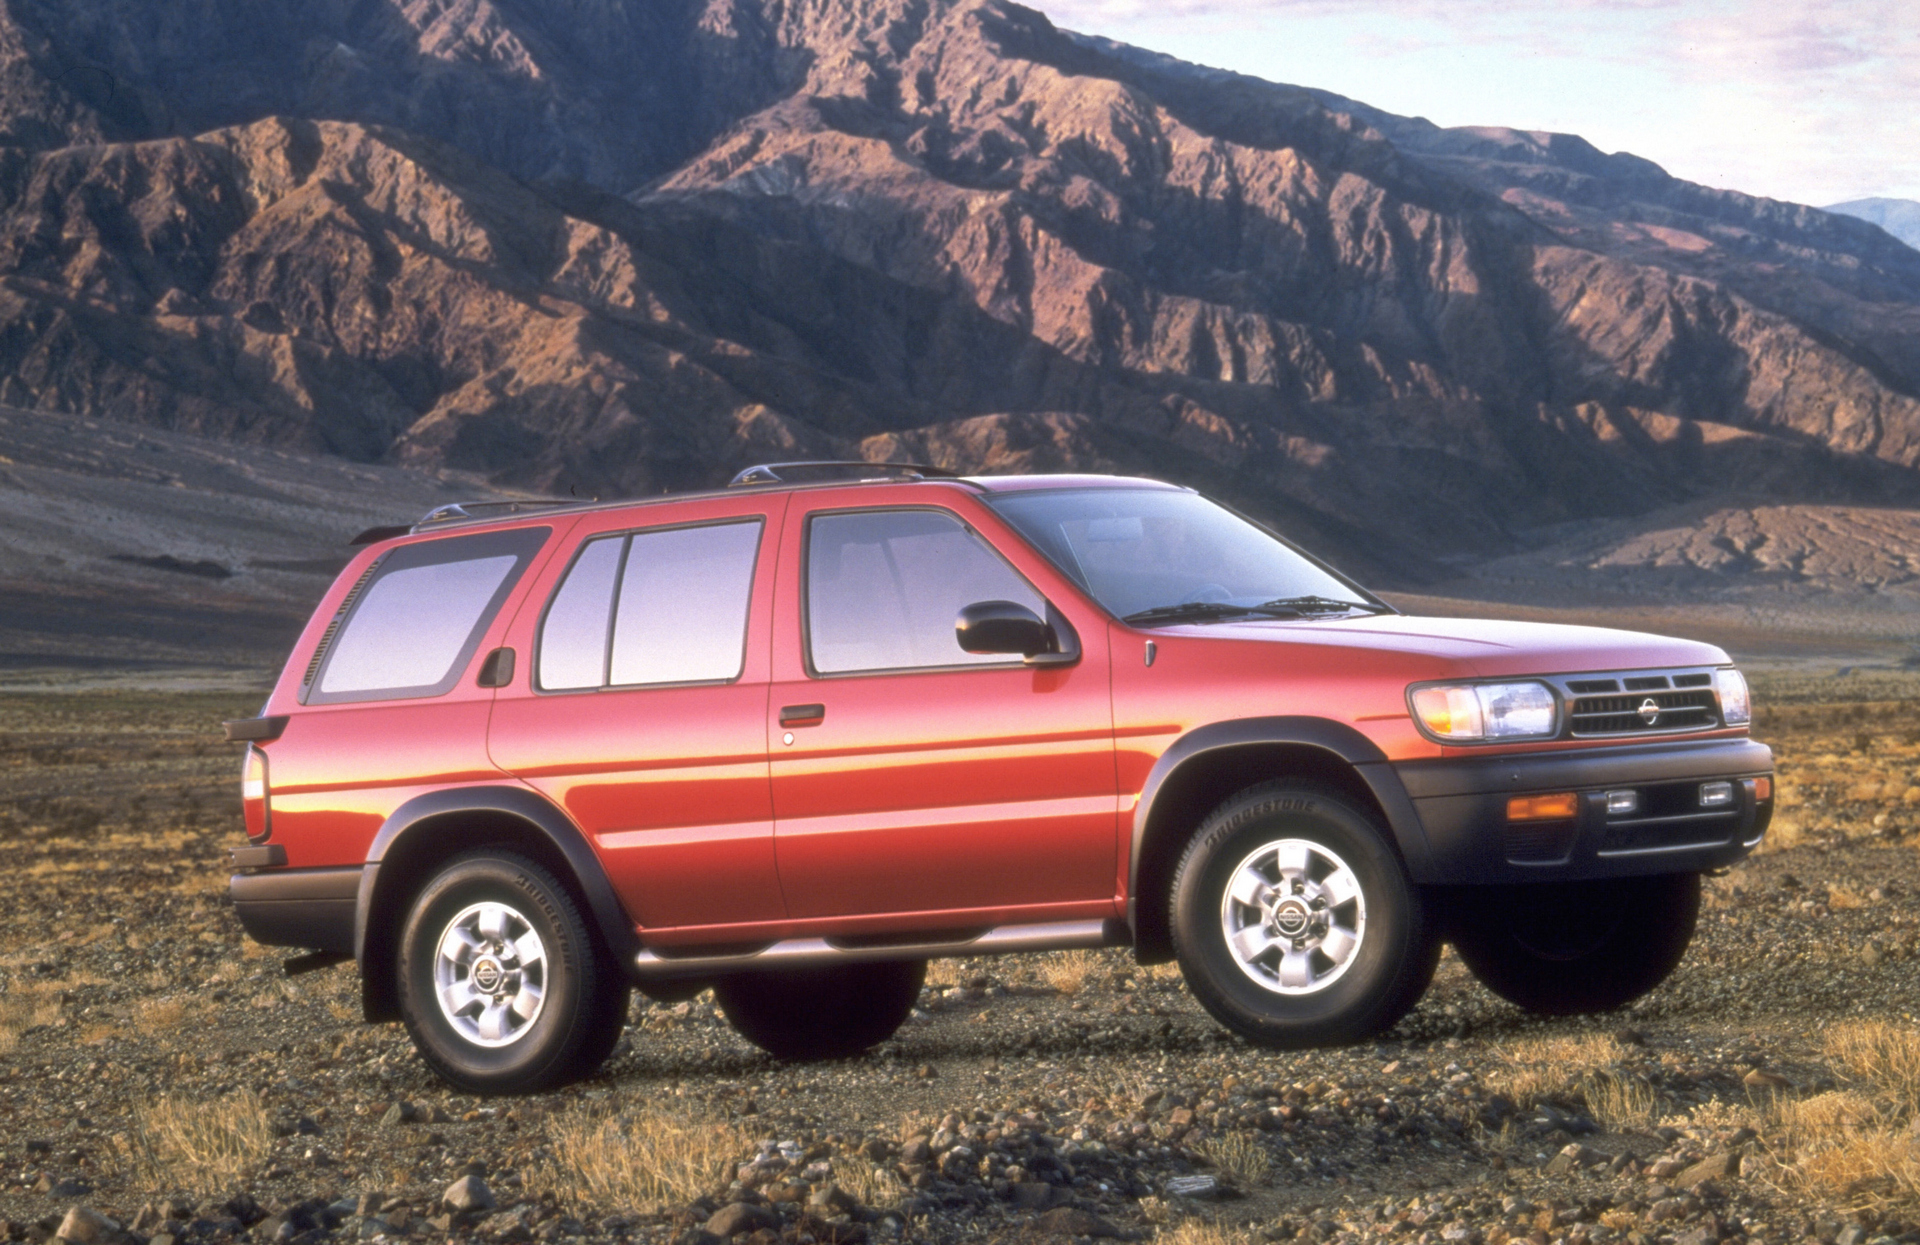 1999 Nissan Pathfinder © Nissan Motor Co., Ltd.